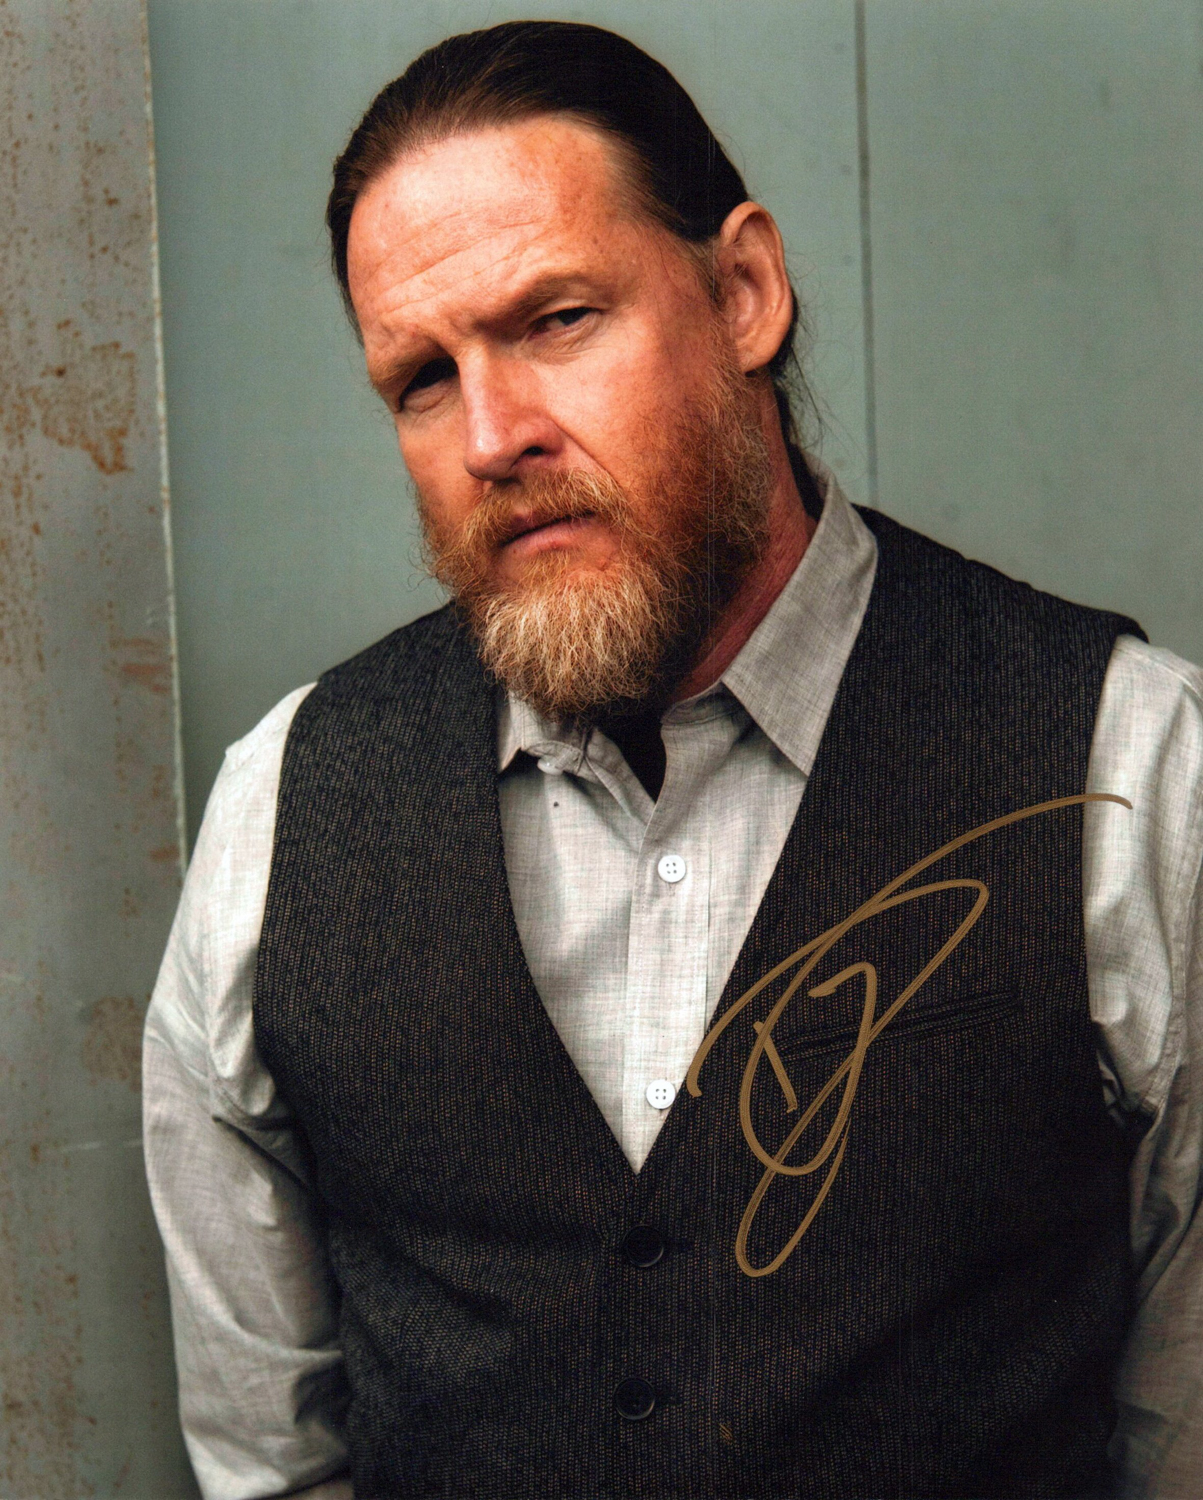 Donal Logue Original Autogramm auf Foto 20x25cm - Sons of Anarchy